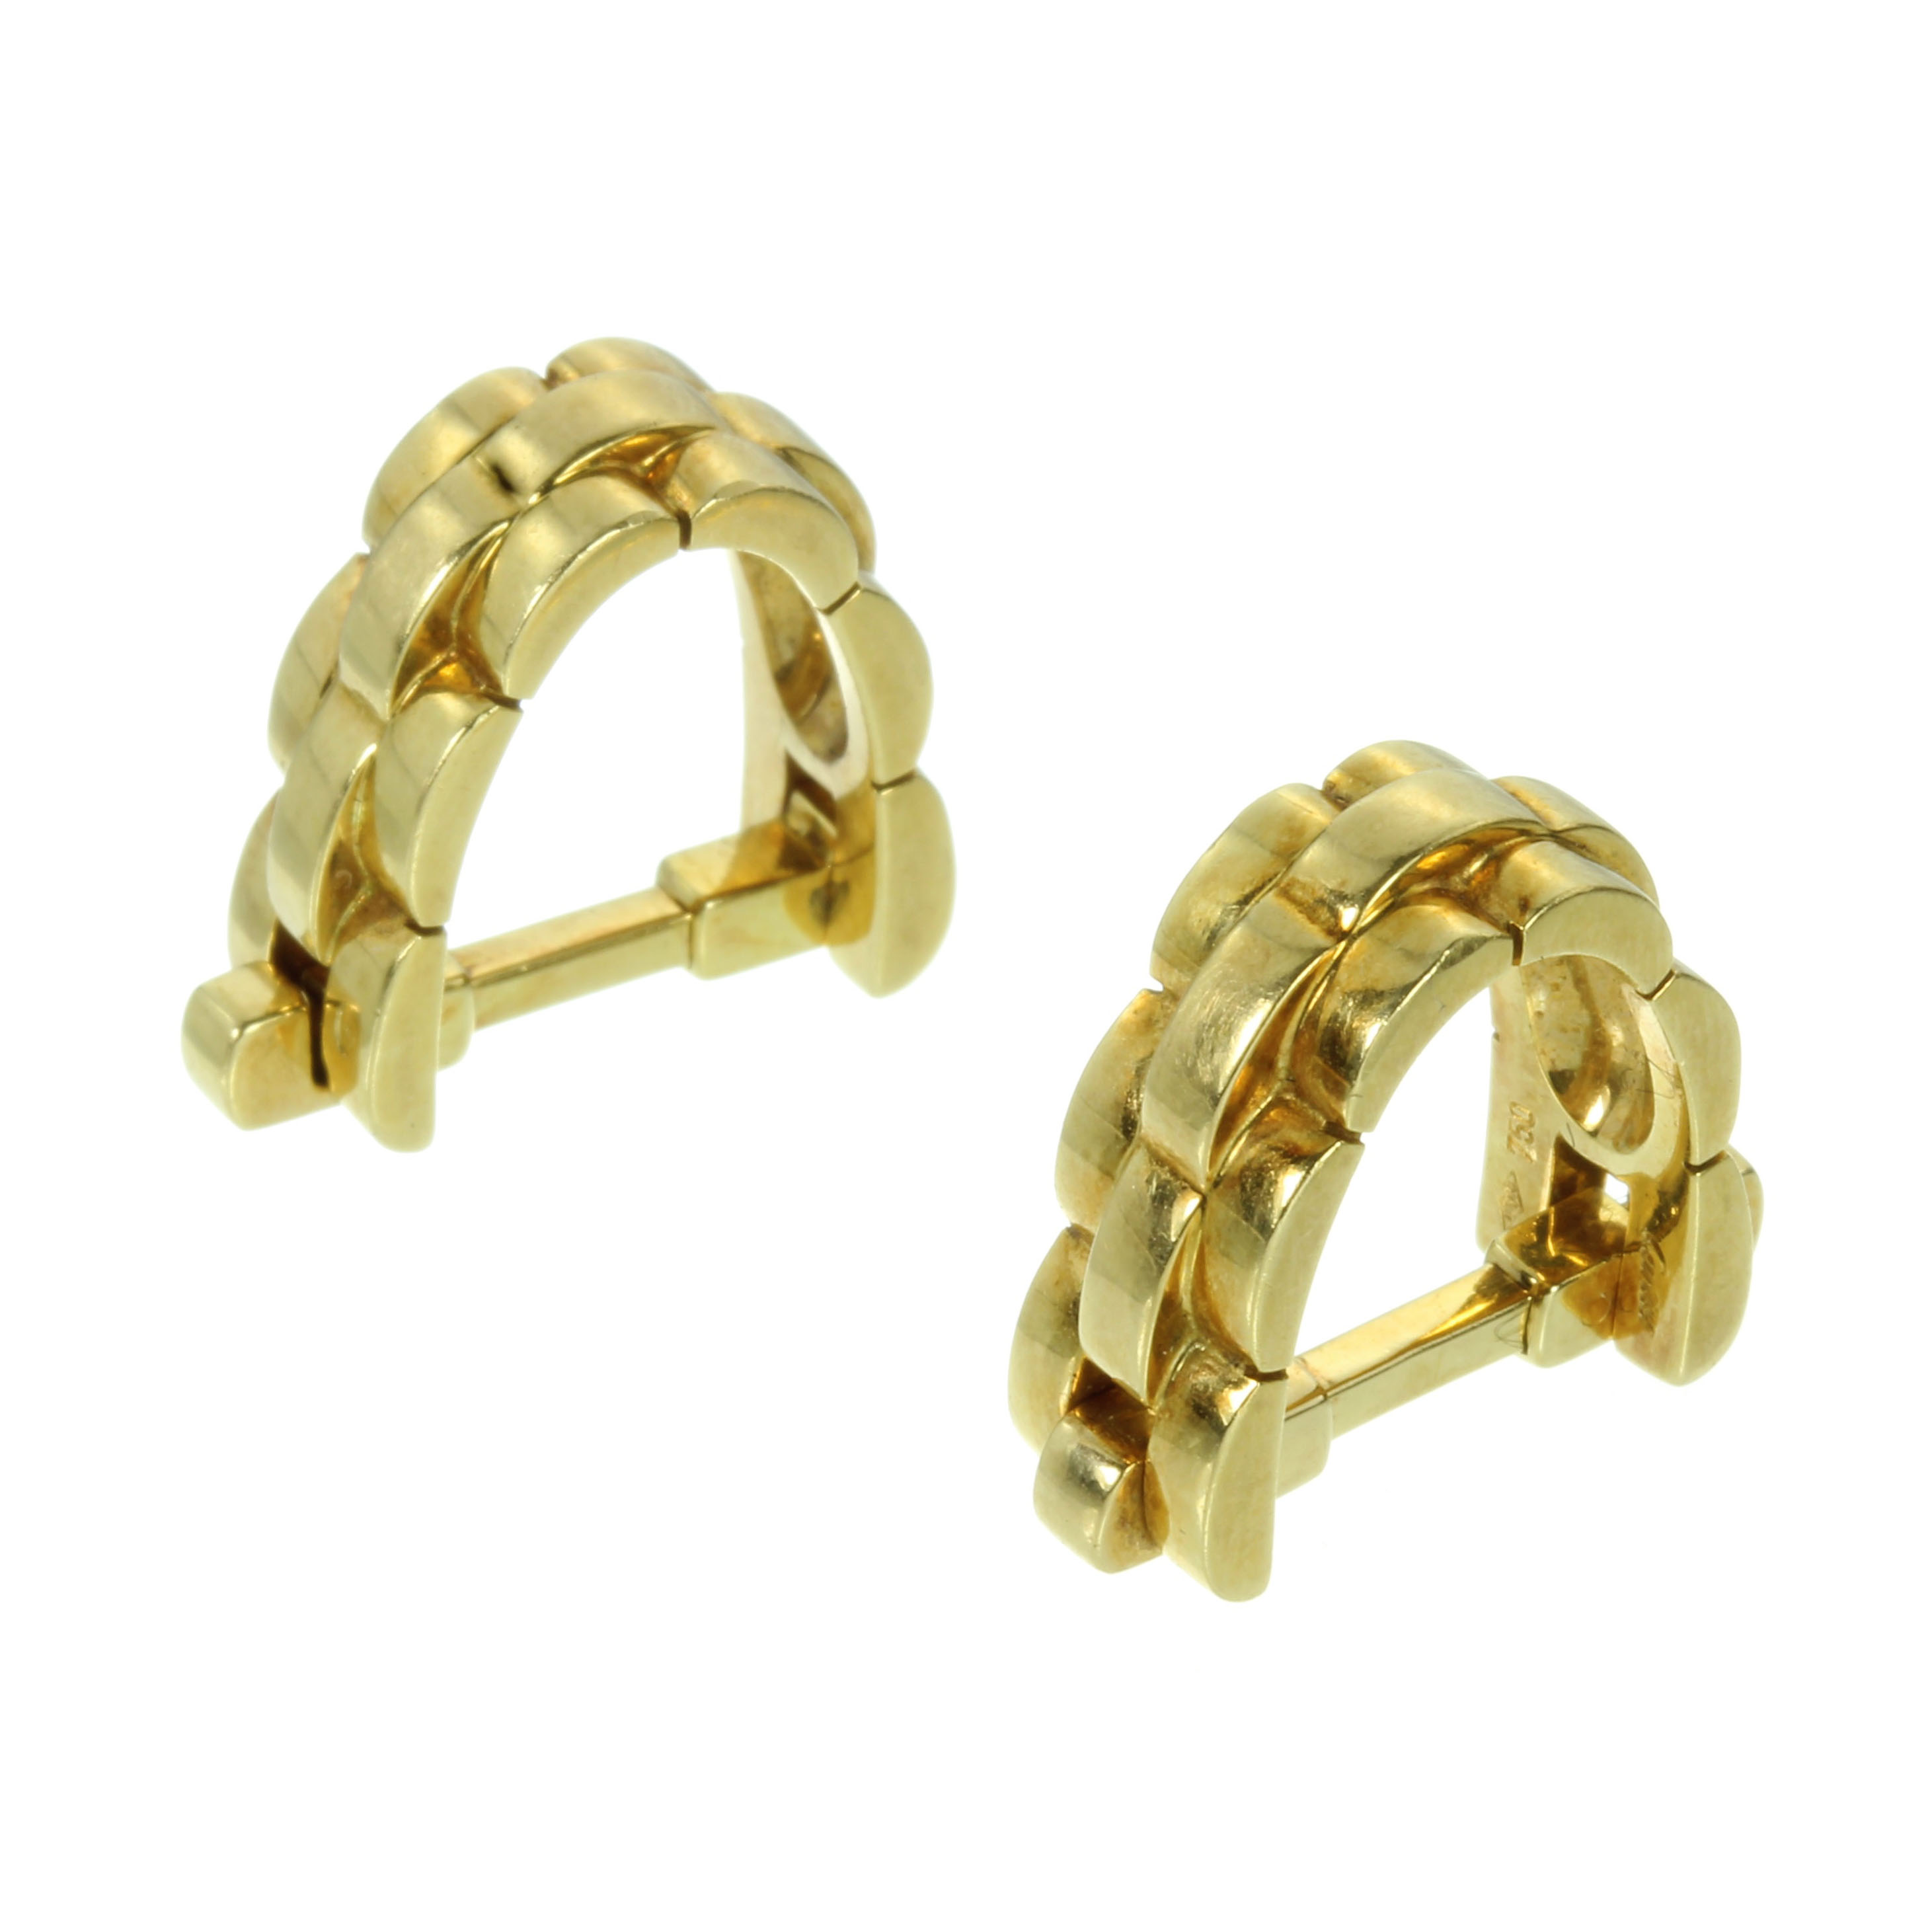 Los 40 - A PAIR OF VINTAGE MAILLON CUFFLINKS BY CARTIER in 18ct yellow gold, each designed as a gold link